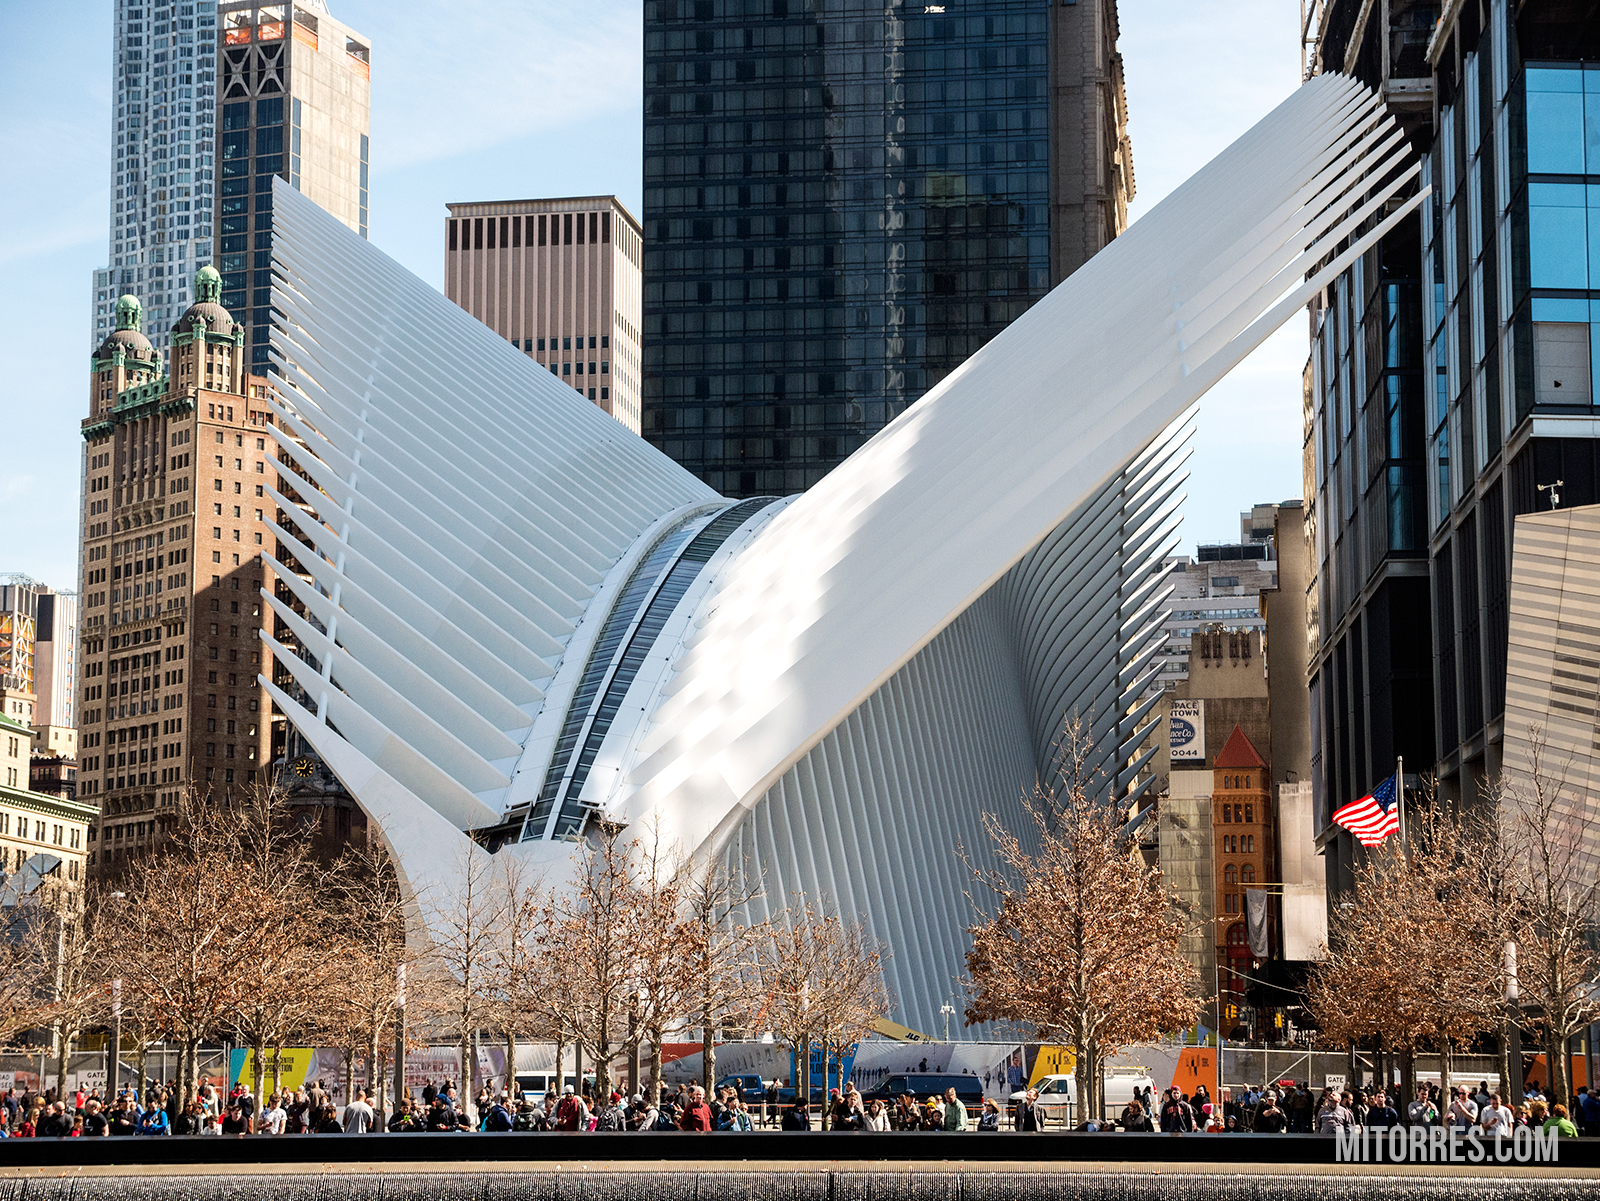 The Oculus in New York City, New York. Photo: Marlon I. Torres